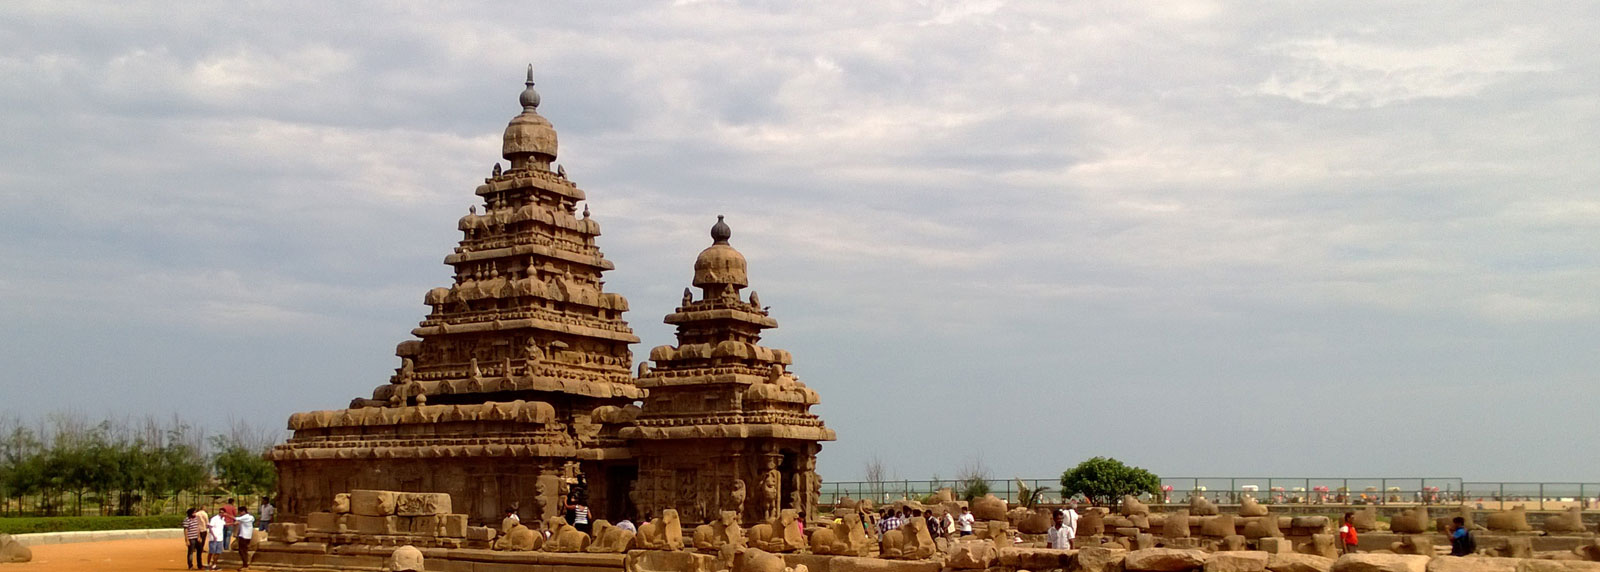 mahabalipuram-tour-package